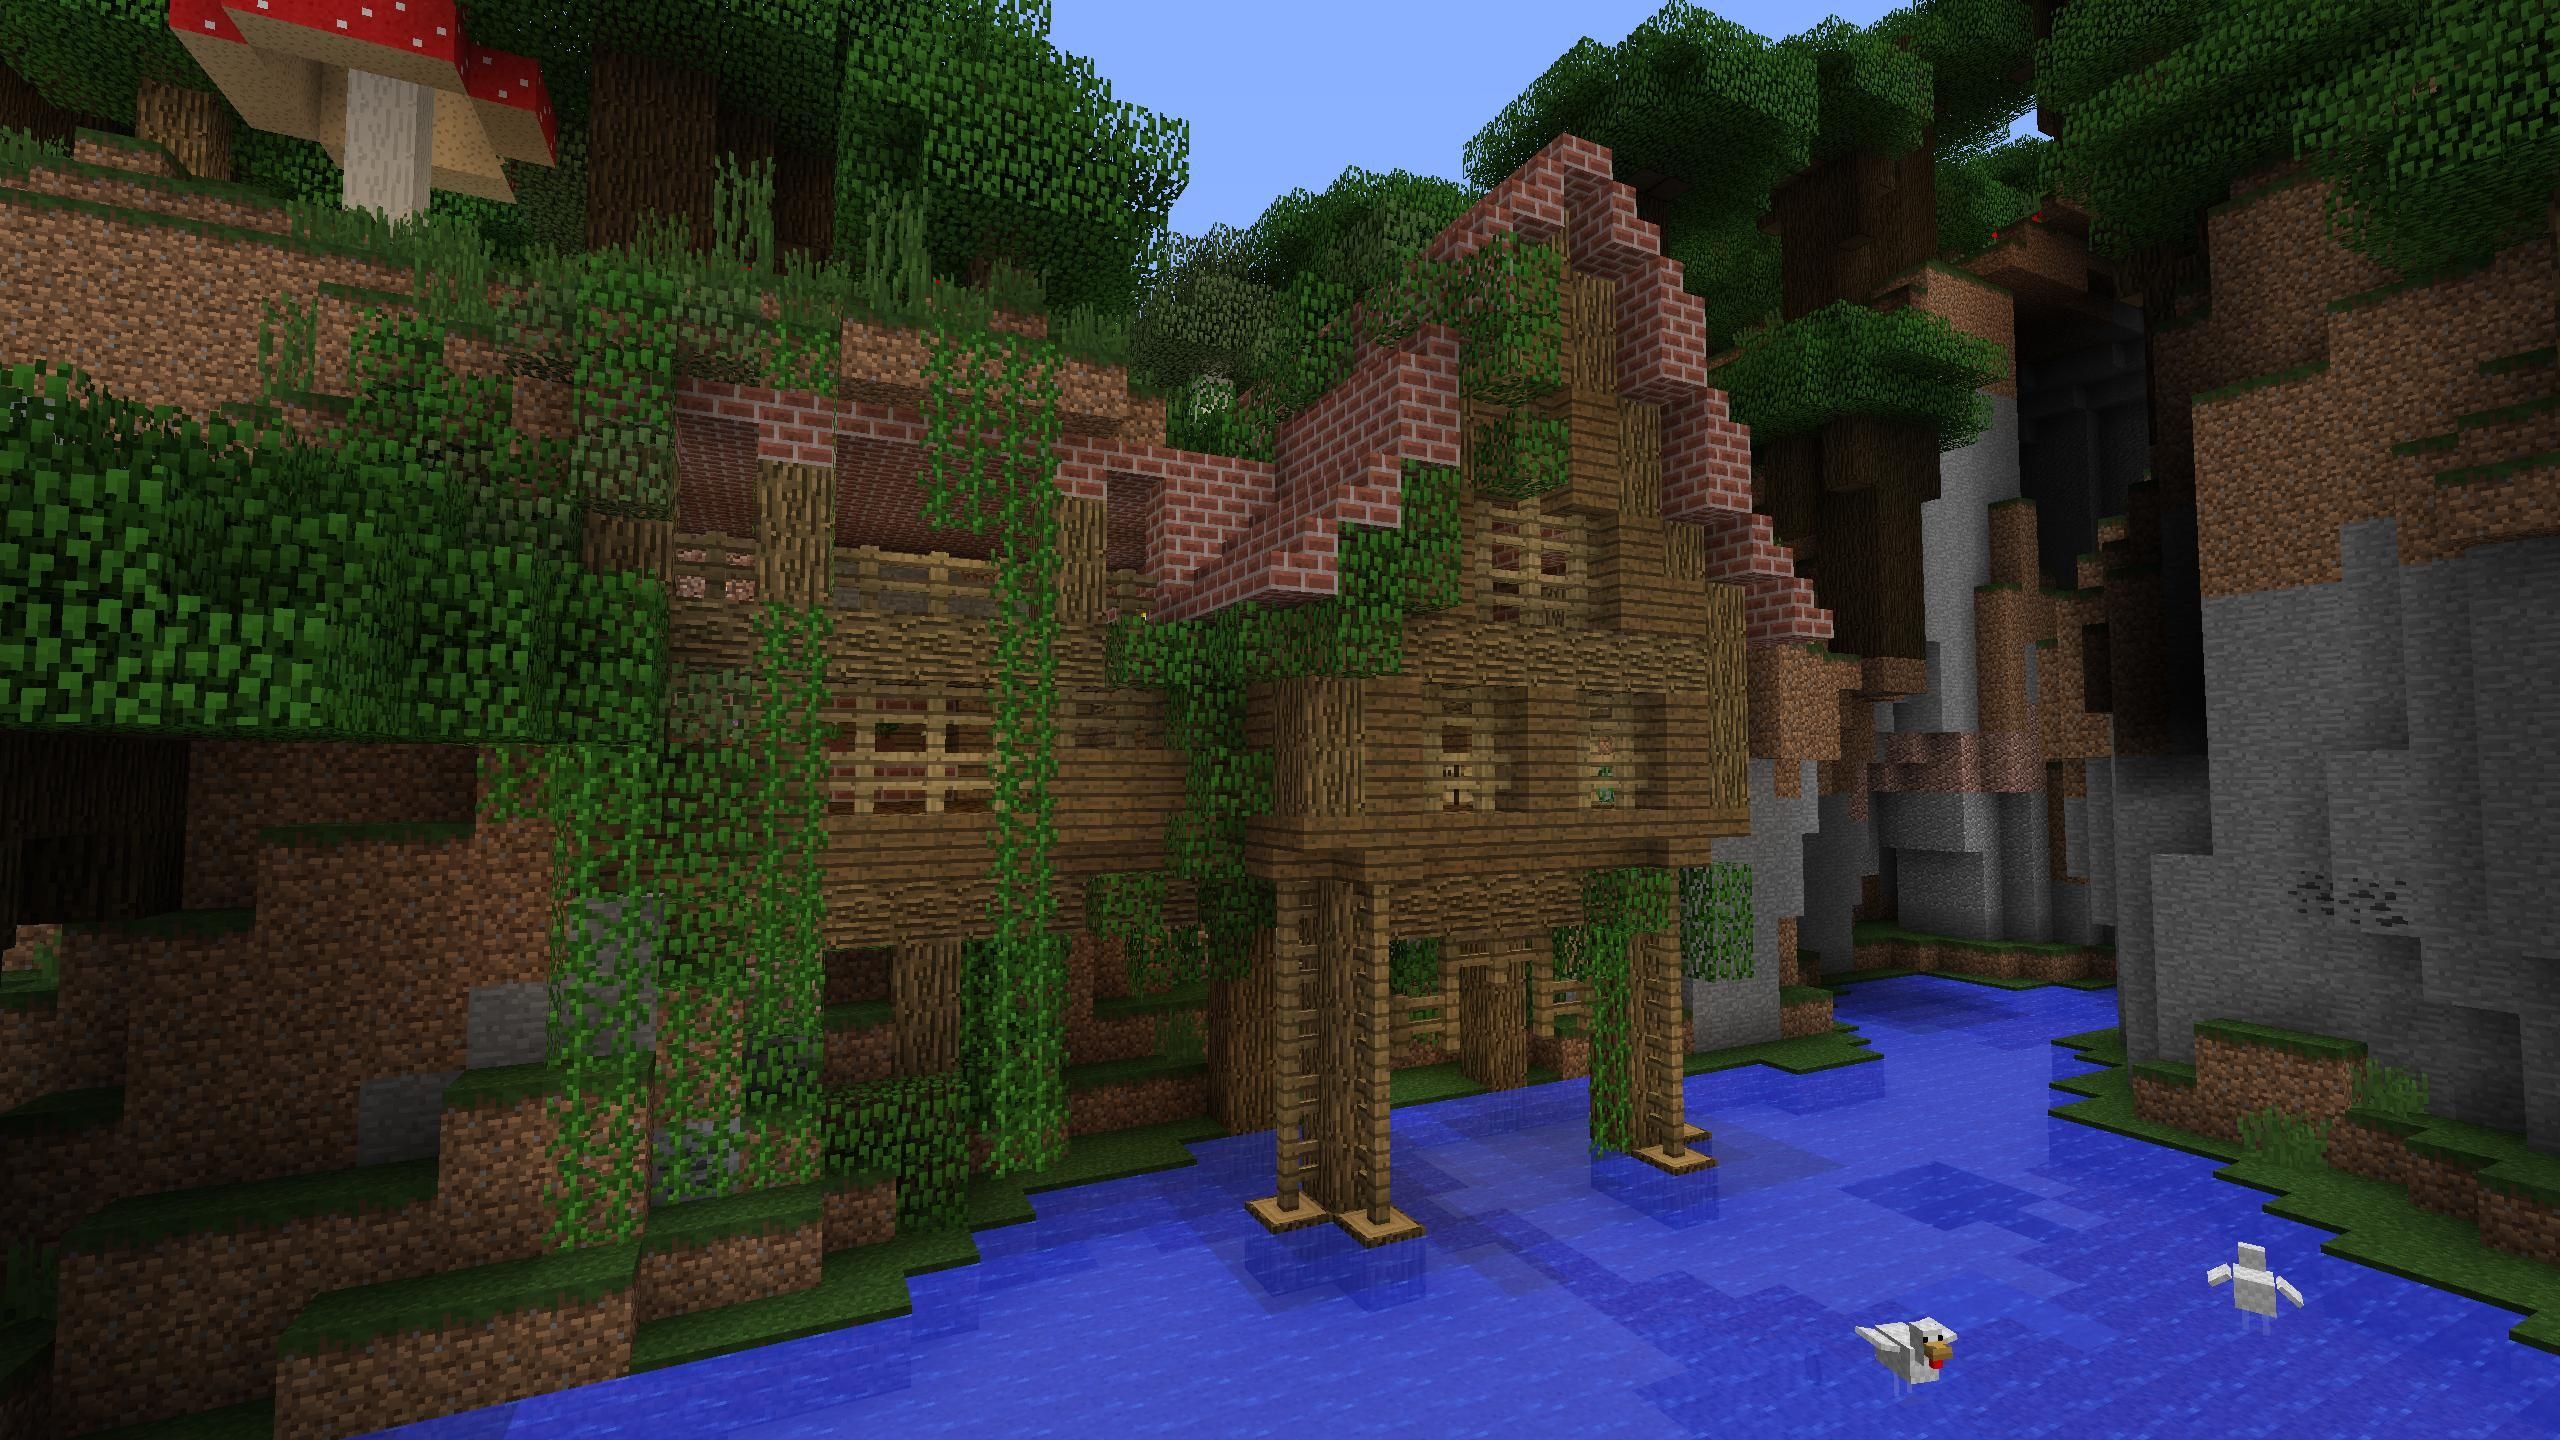 Pin By Maddie Burley On Minecraft Minecraft Buildings